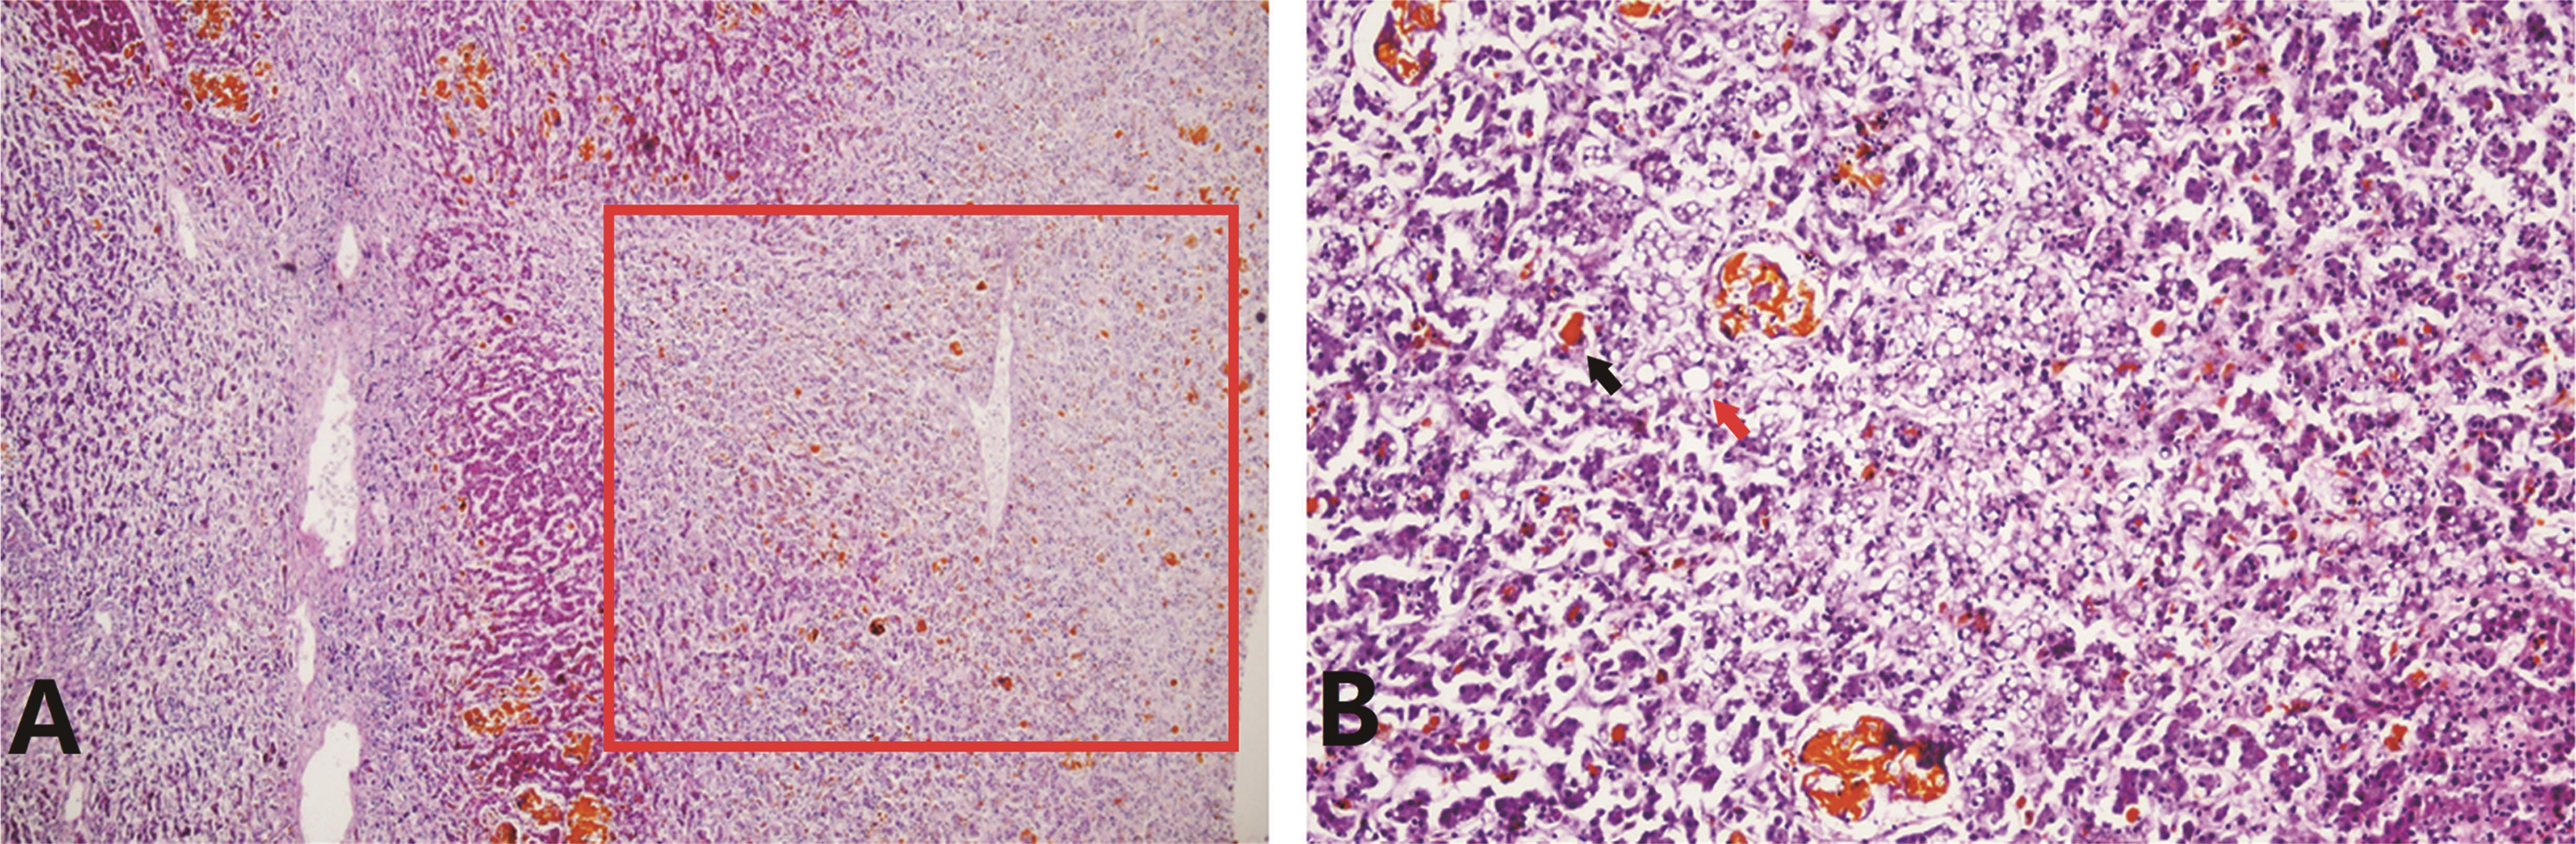 Liver histopathology of patient 1 revealed massive and submassive necrosis, cholestasis and steatosis.